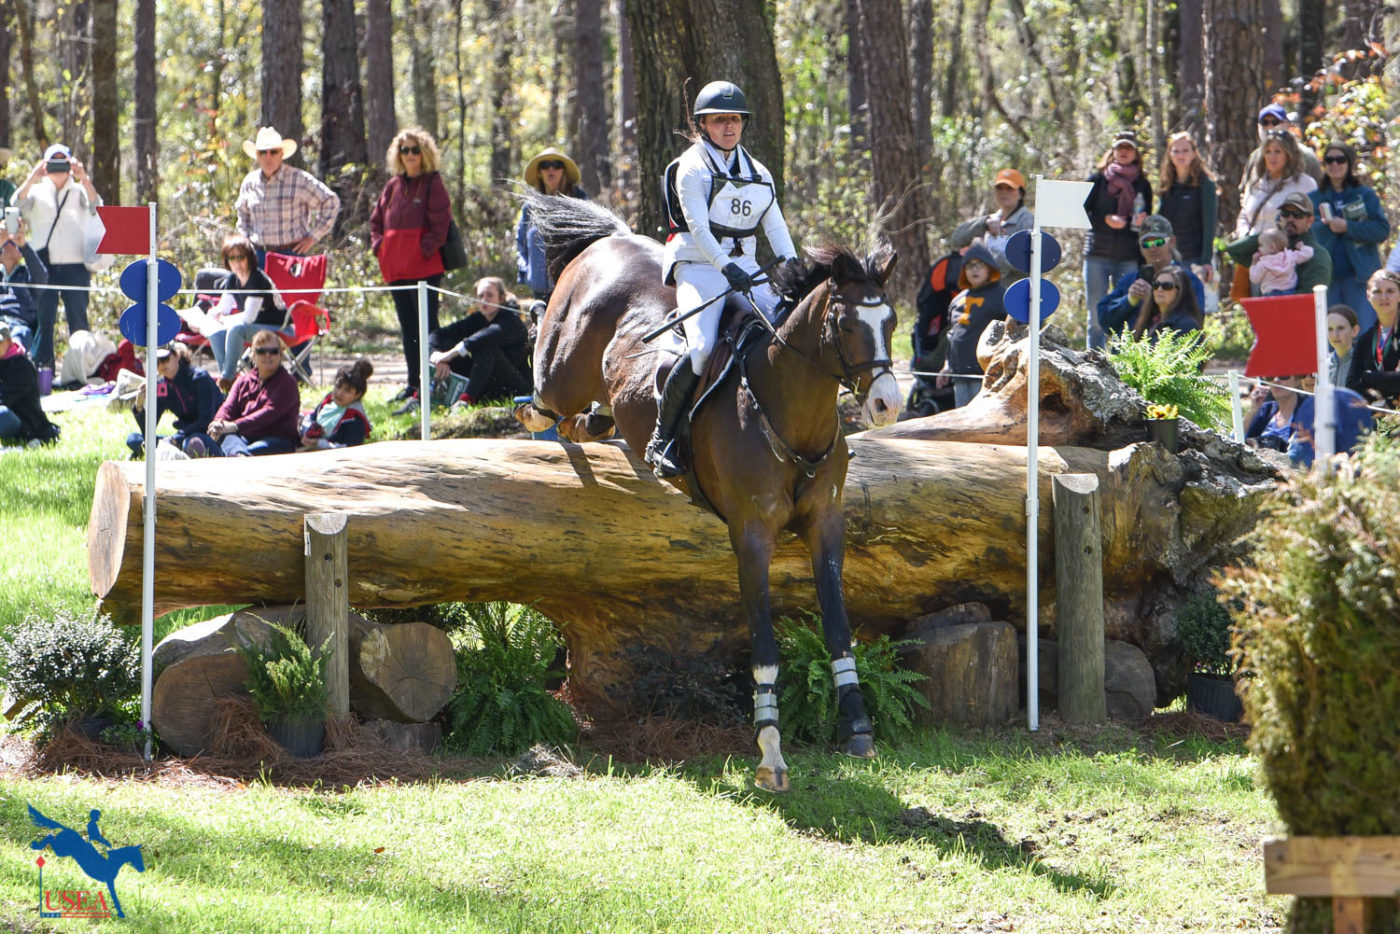 Jessica Phoenix and Humble GS sit in 8th after cross-country. USEA/Kate Lokey photo.